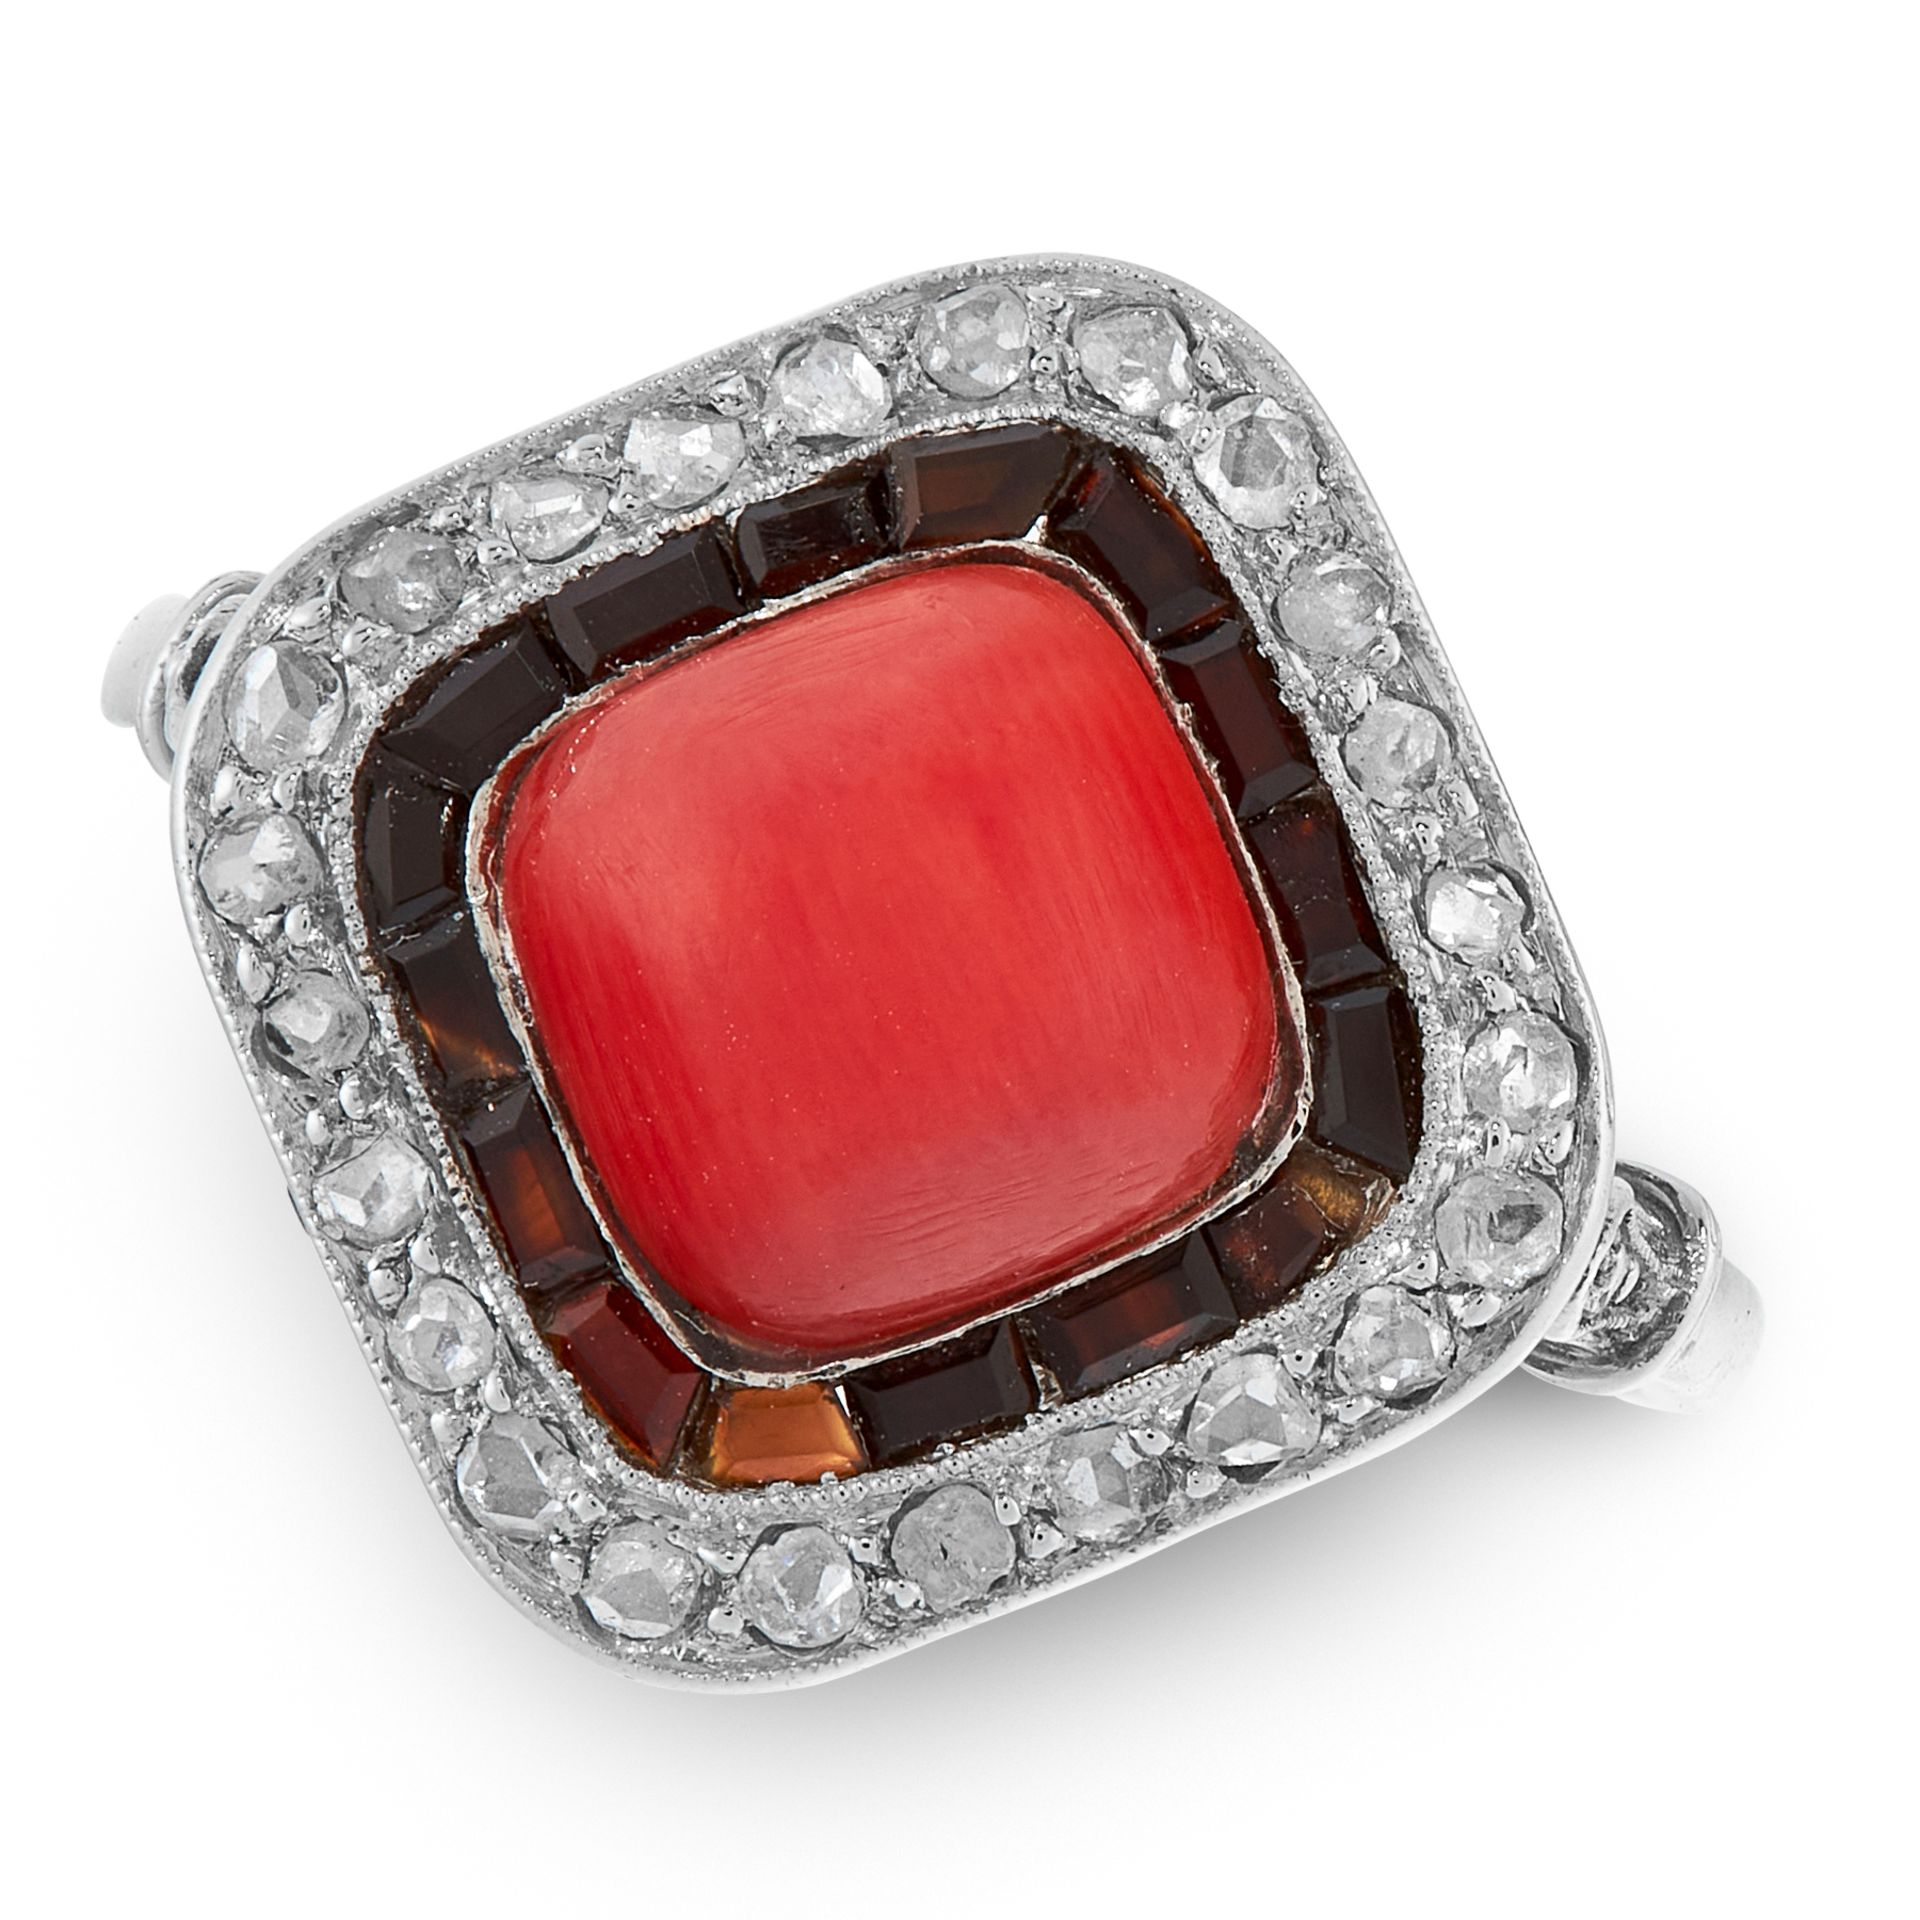 AN ART DECO CORAL, ONYX AND DIAMOND DRESS RING, EARLY 20TH CENTURY in platinum, set with a cushion